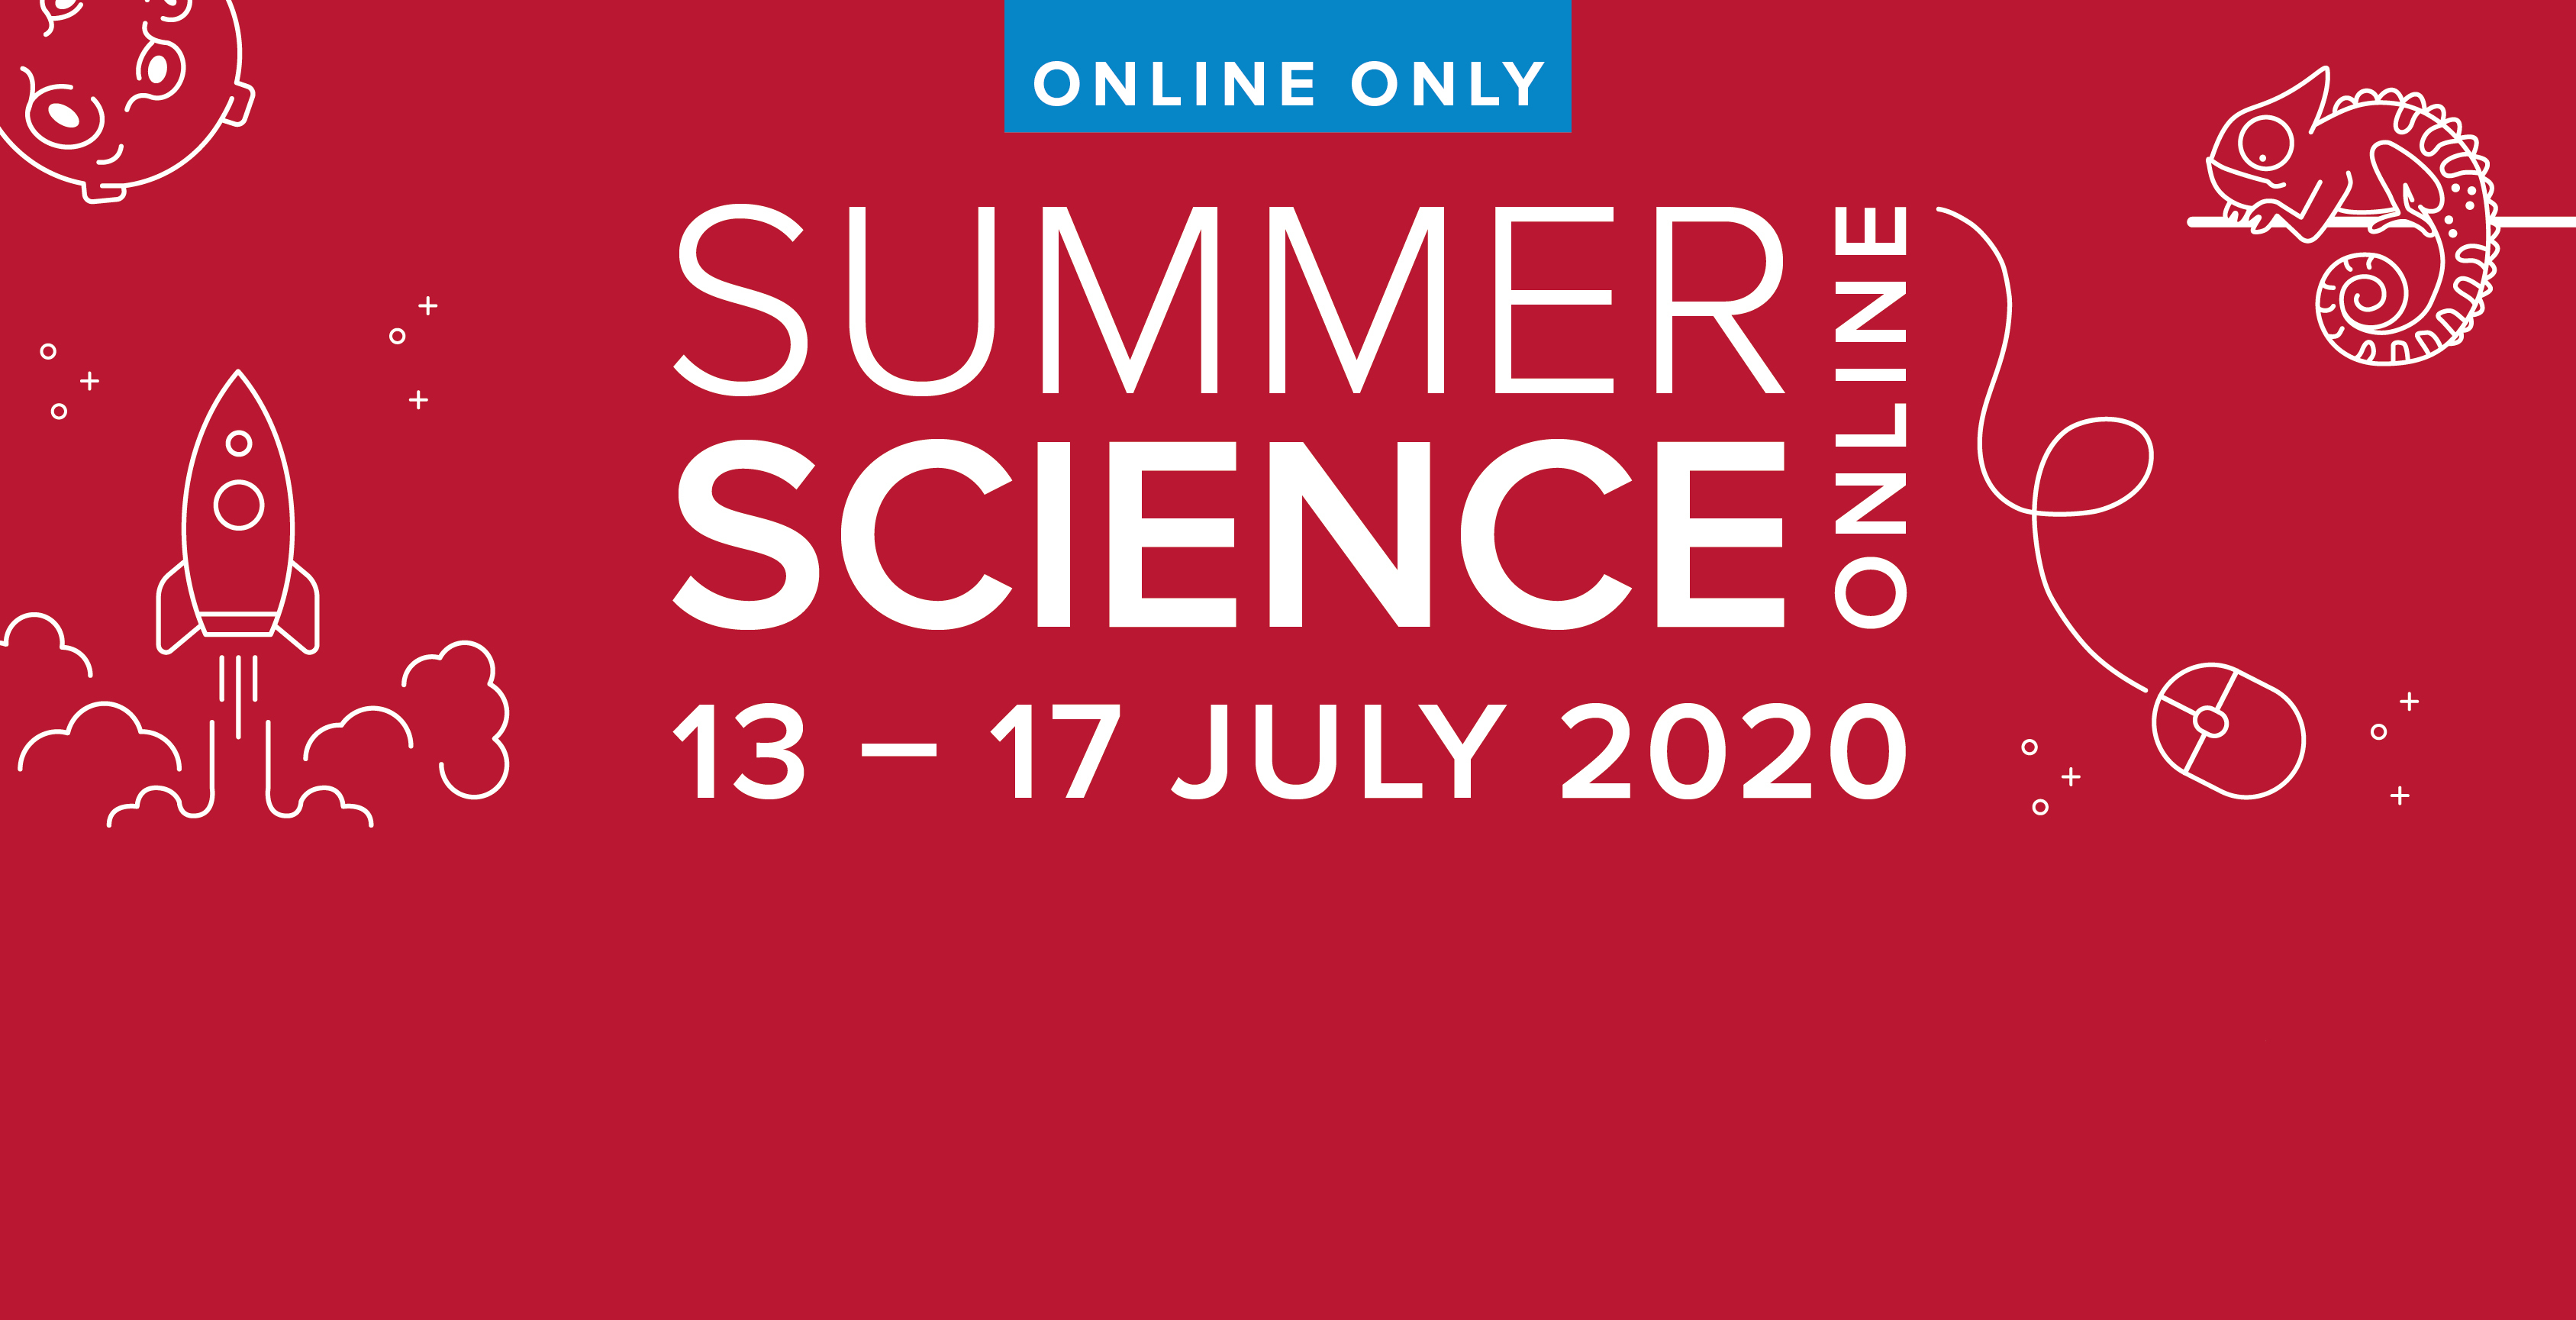 Summer Science Online 13-17 July 2020